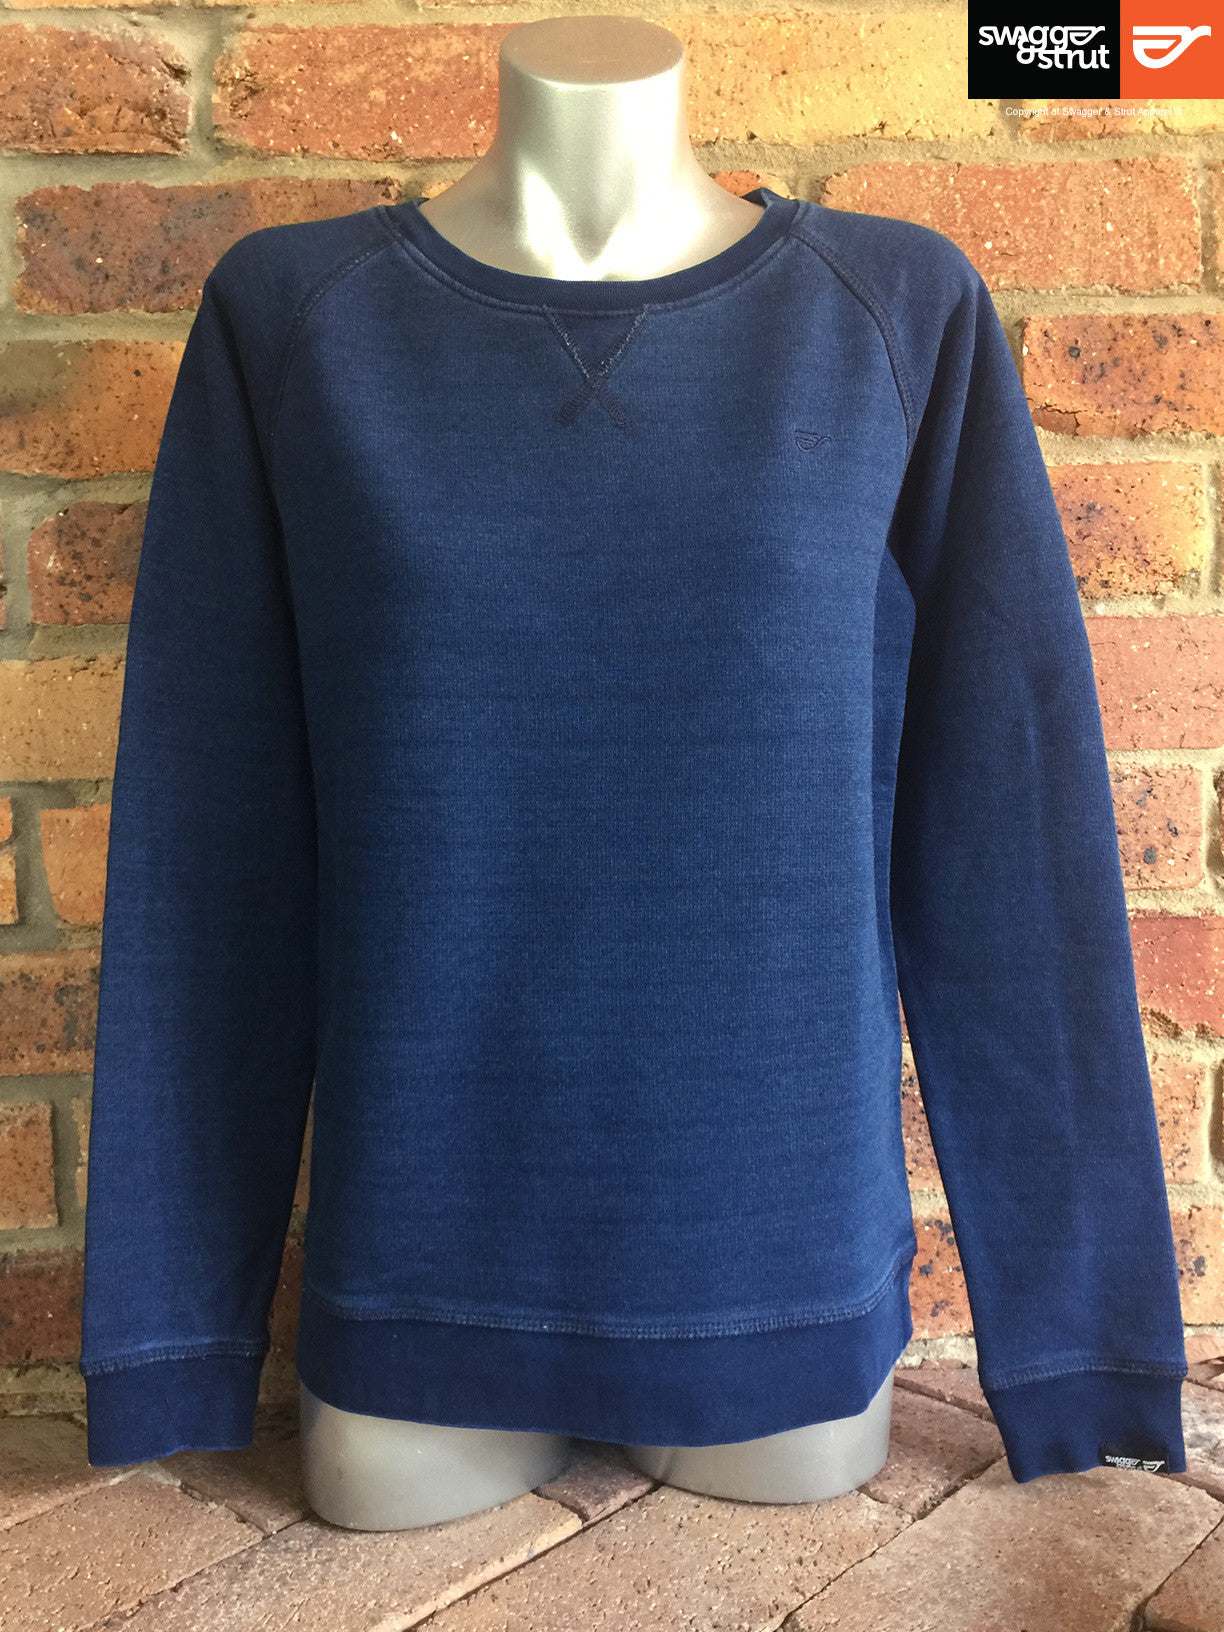 Mid Washed Indigo - Female Organic Denim Crew Neck Sweatshirt